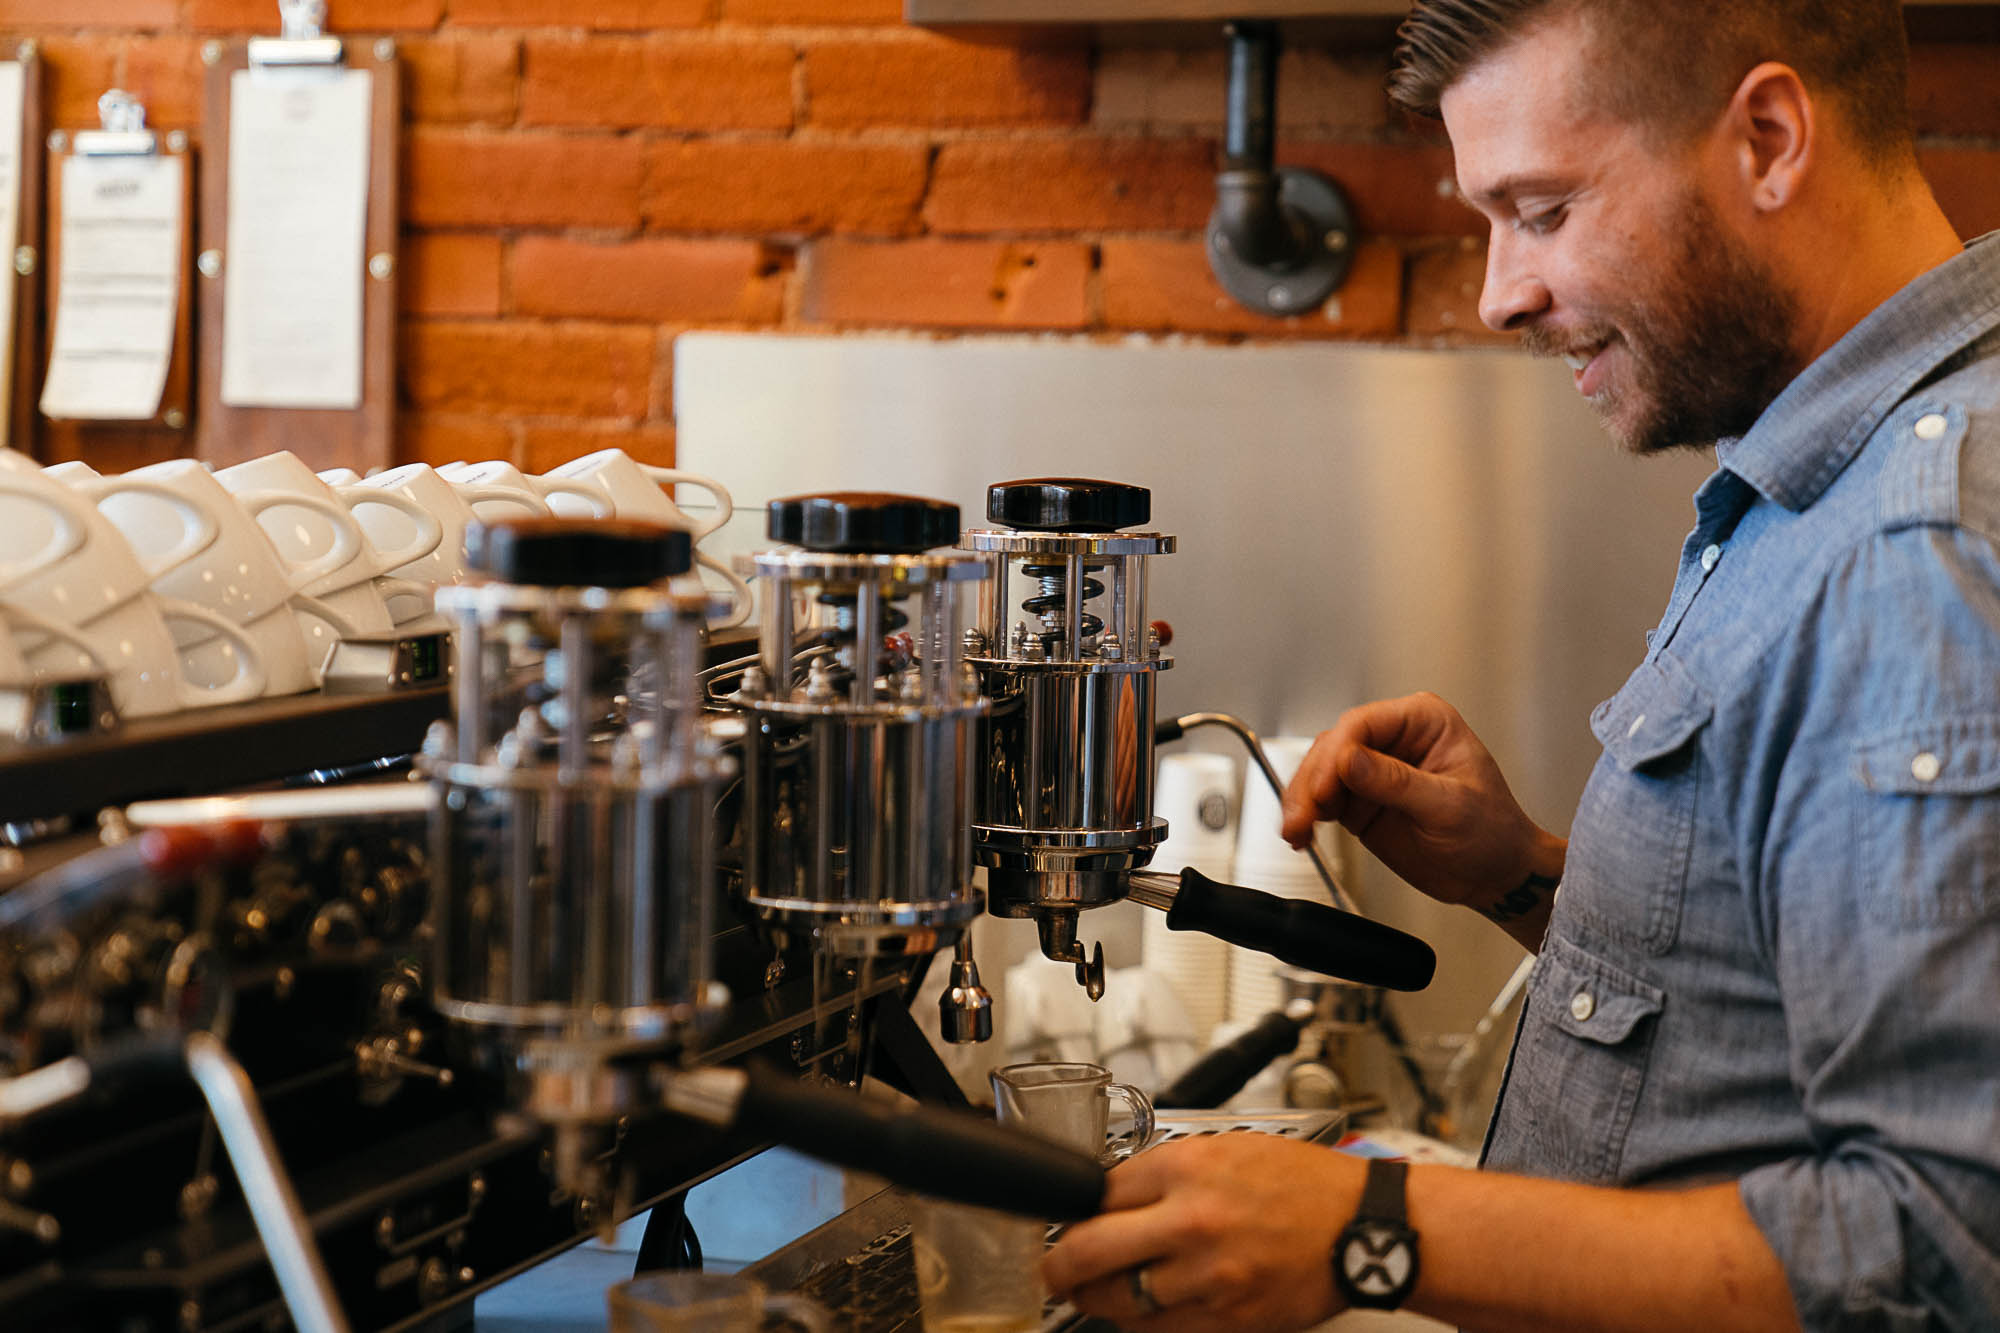 Brewing coffee at Boxcar Coffee Roasters in Boulder, CO as part of the Dirt Road Travels city guide.